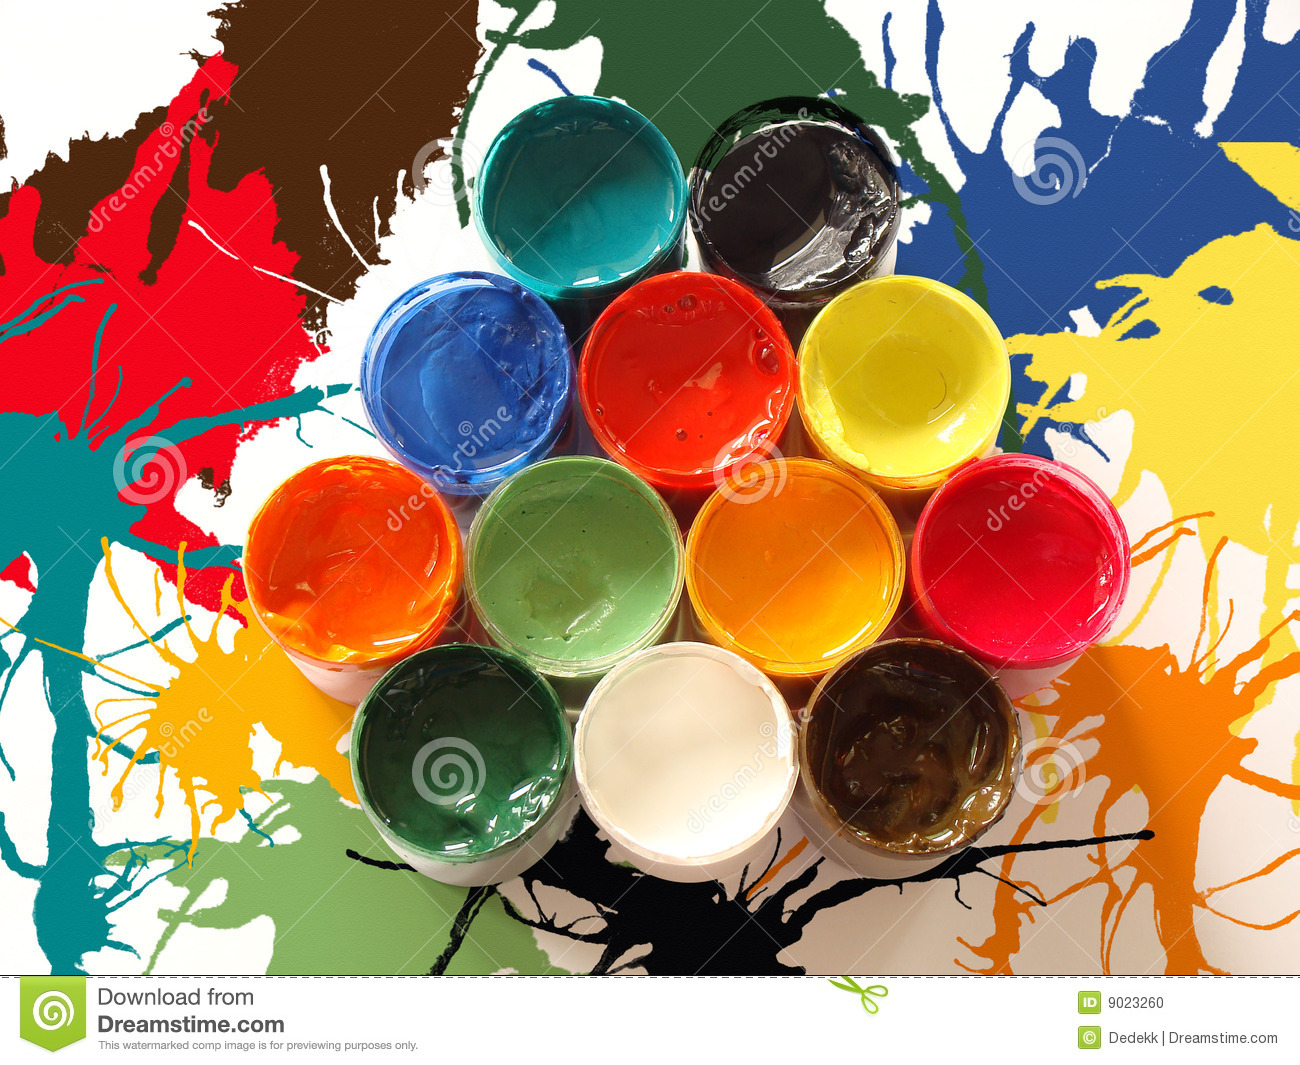 colors of paints stock photo - image: 9023260